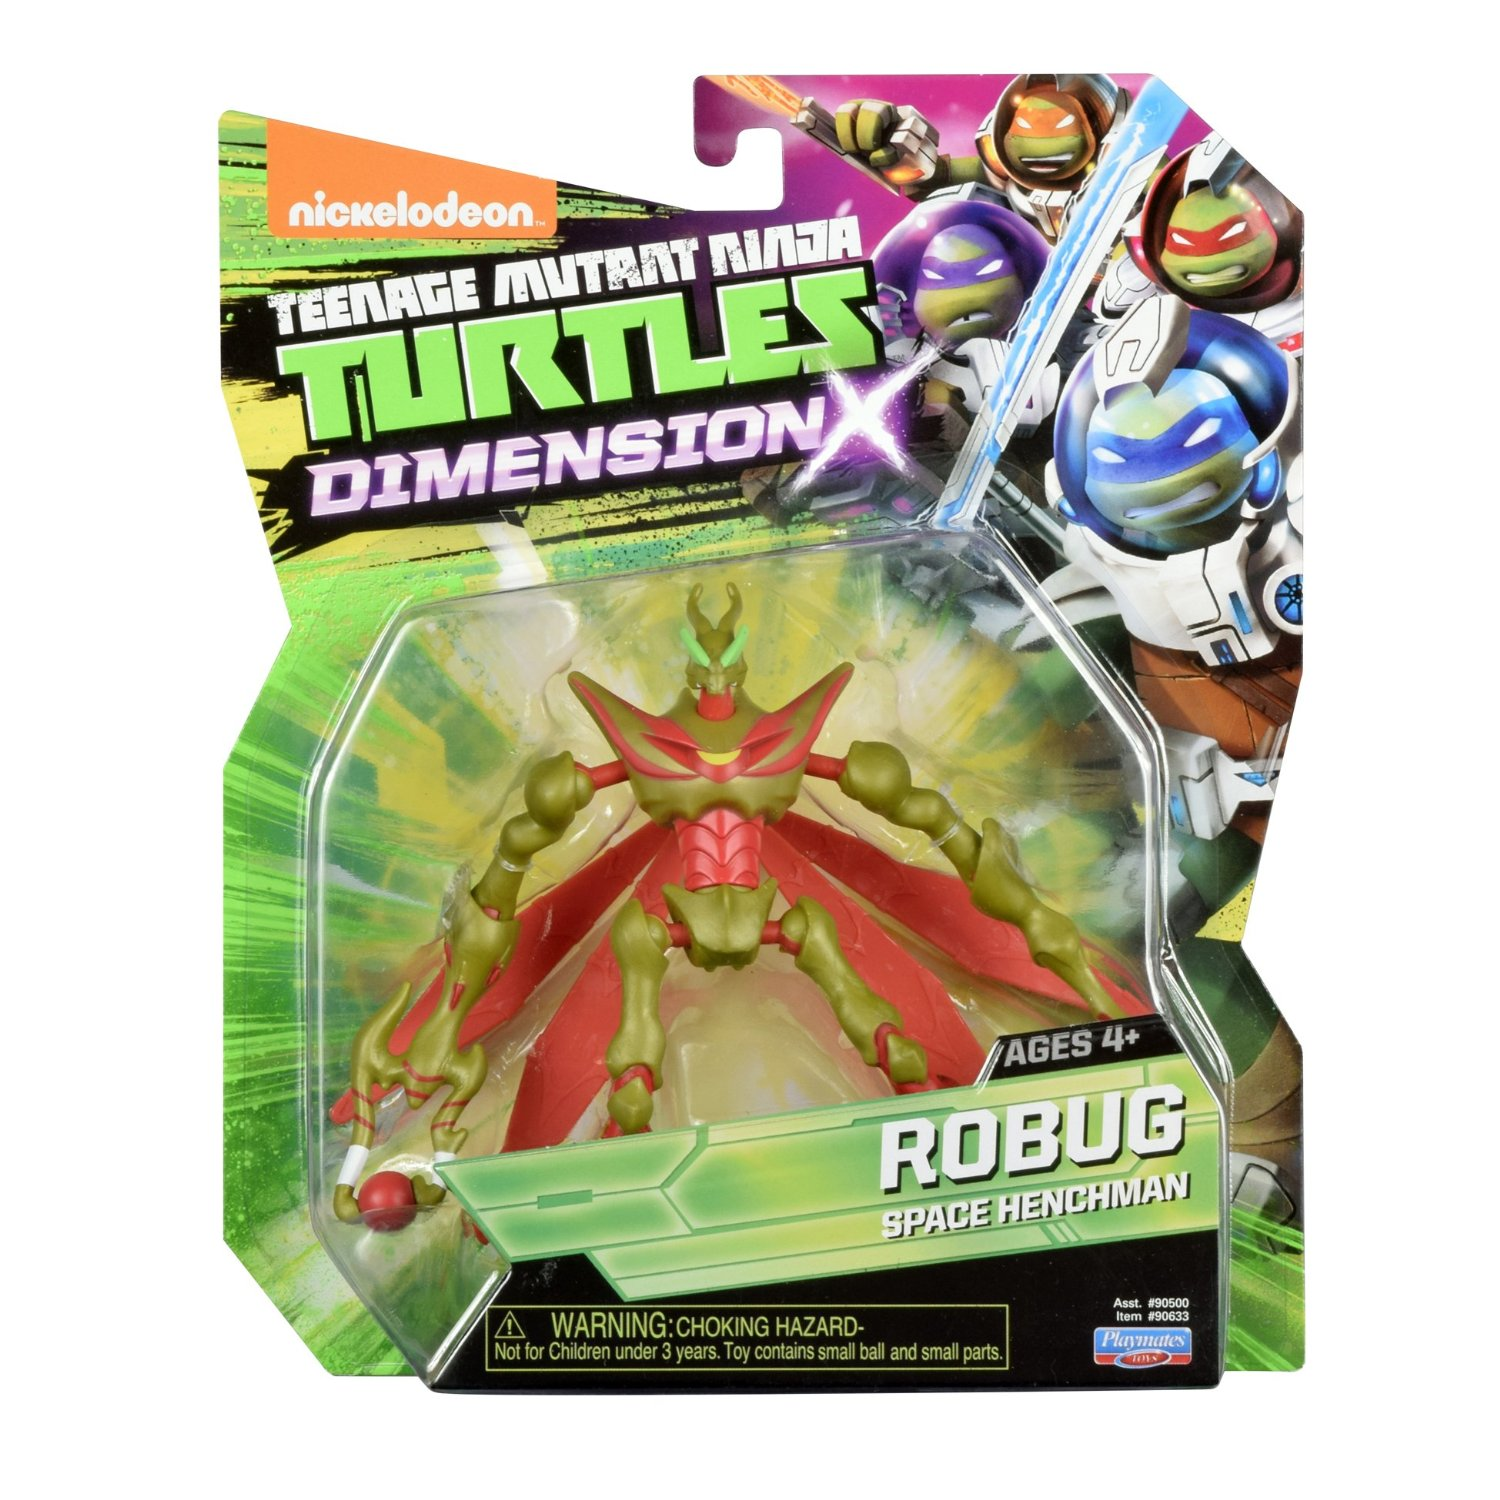 Teenage Mutant Ninja Turtles 2012 Neuralizer Toy : Robug action figure tmnt wiki fandom powered by wikia